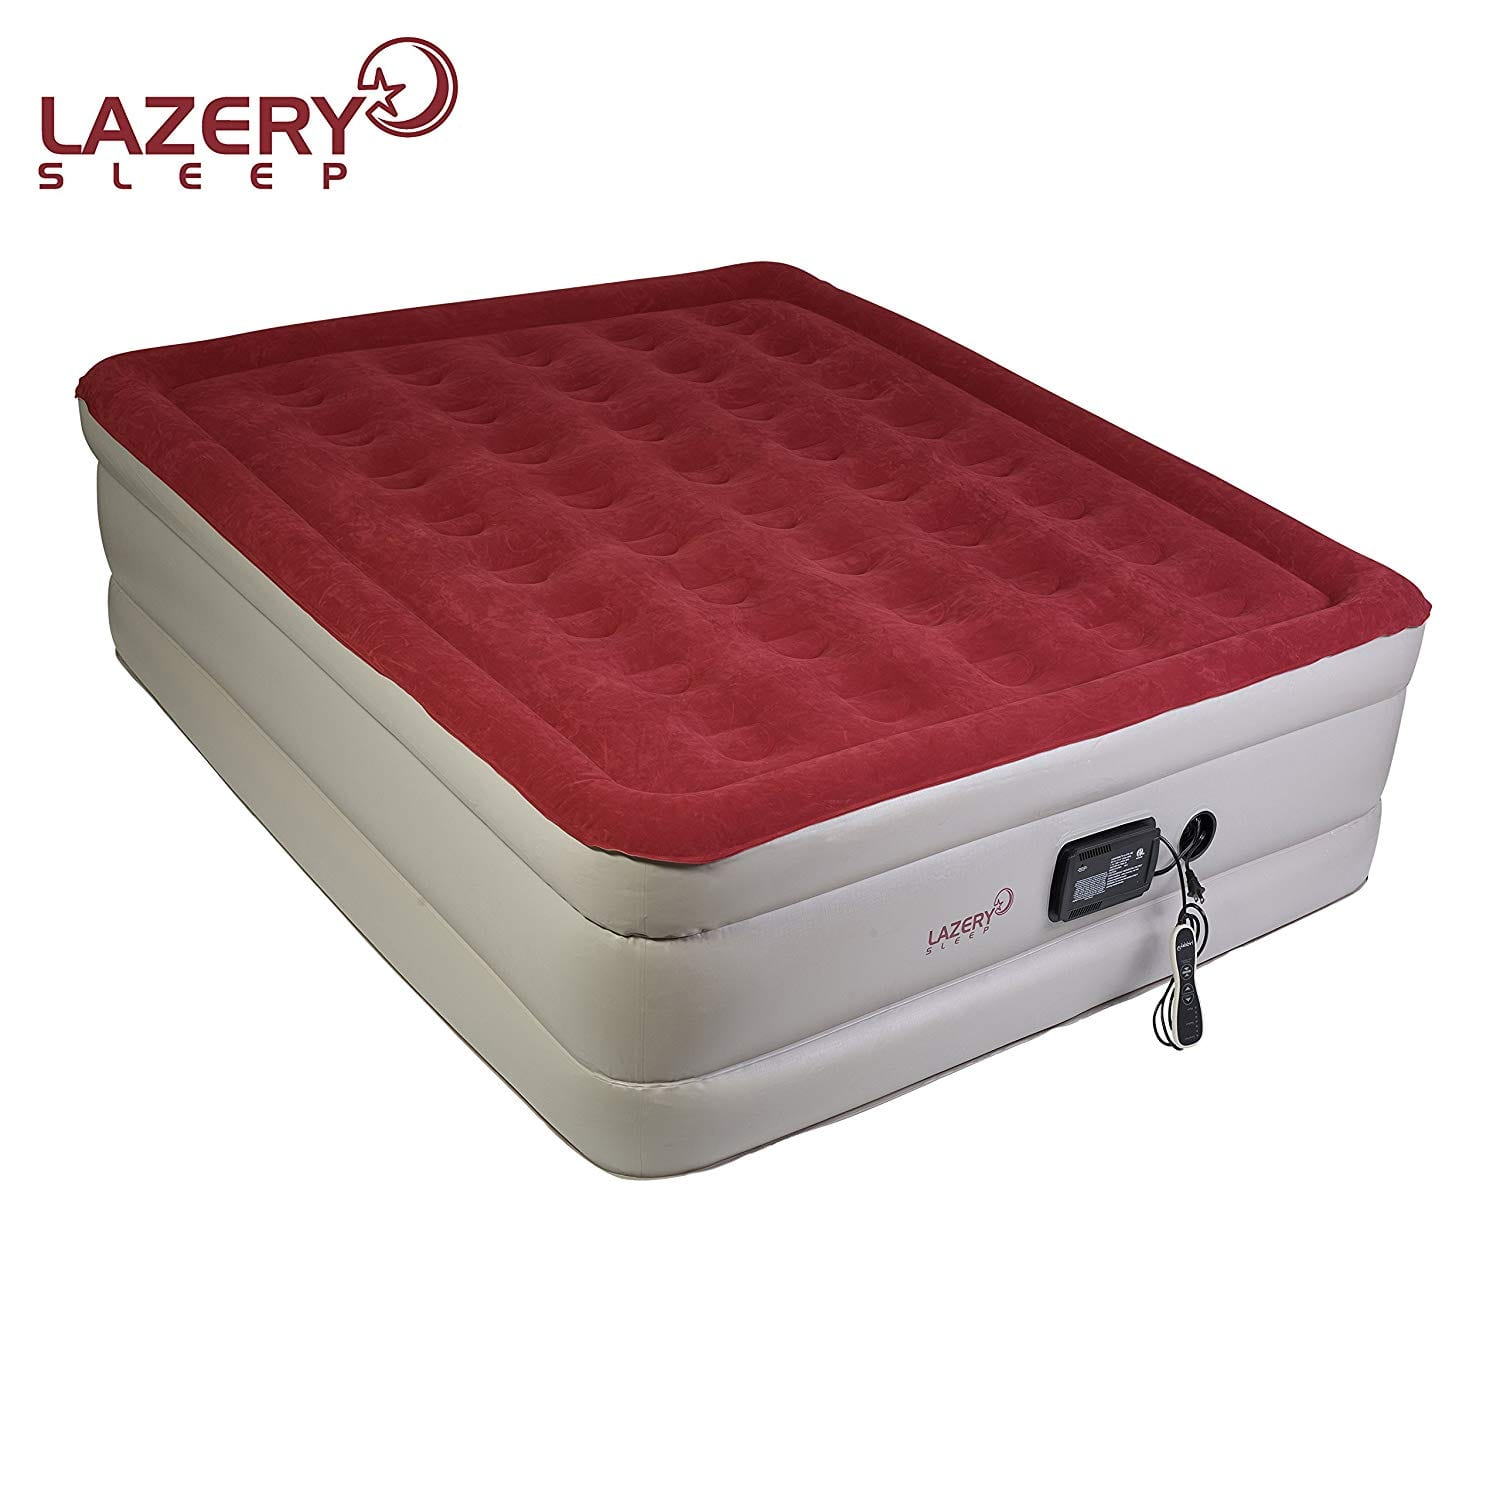 Lazery Sleep Best Air Mattress Review By www.snoremagazine.com